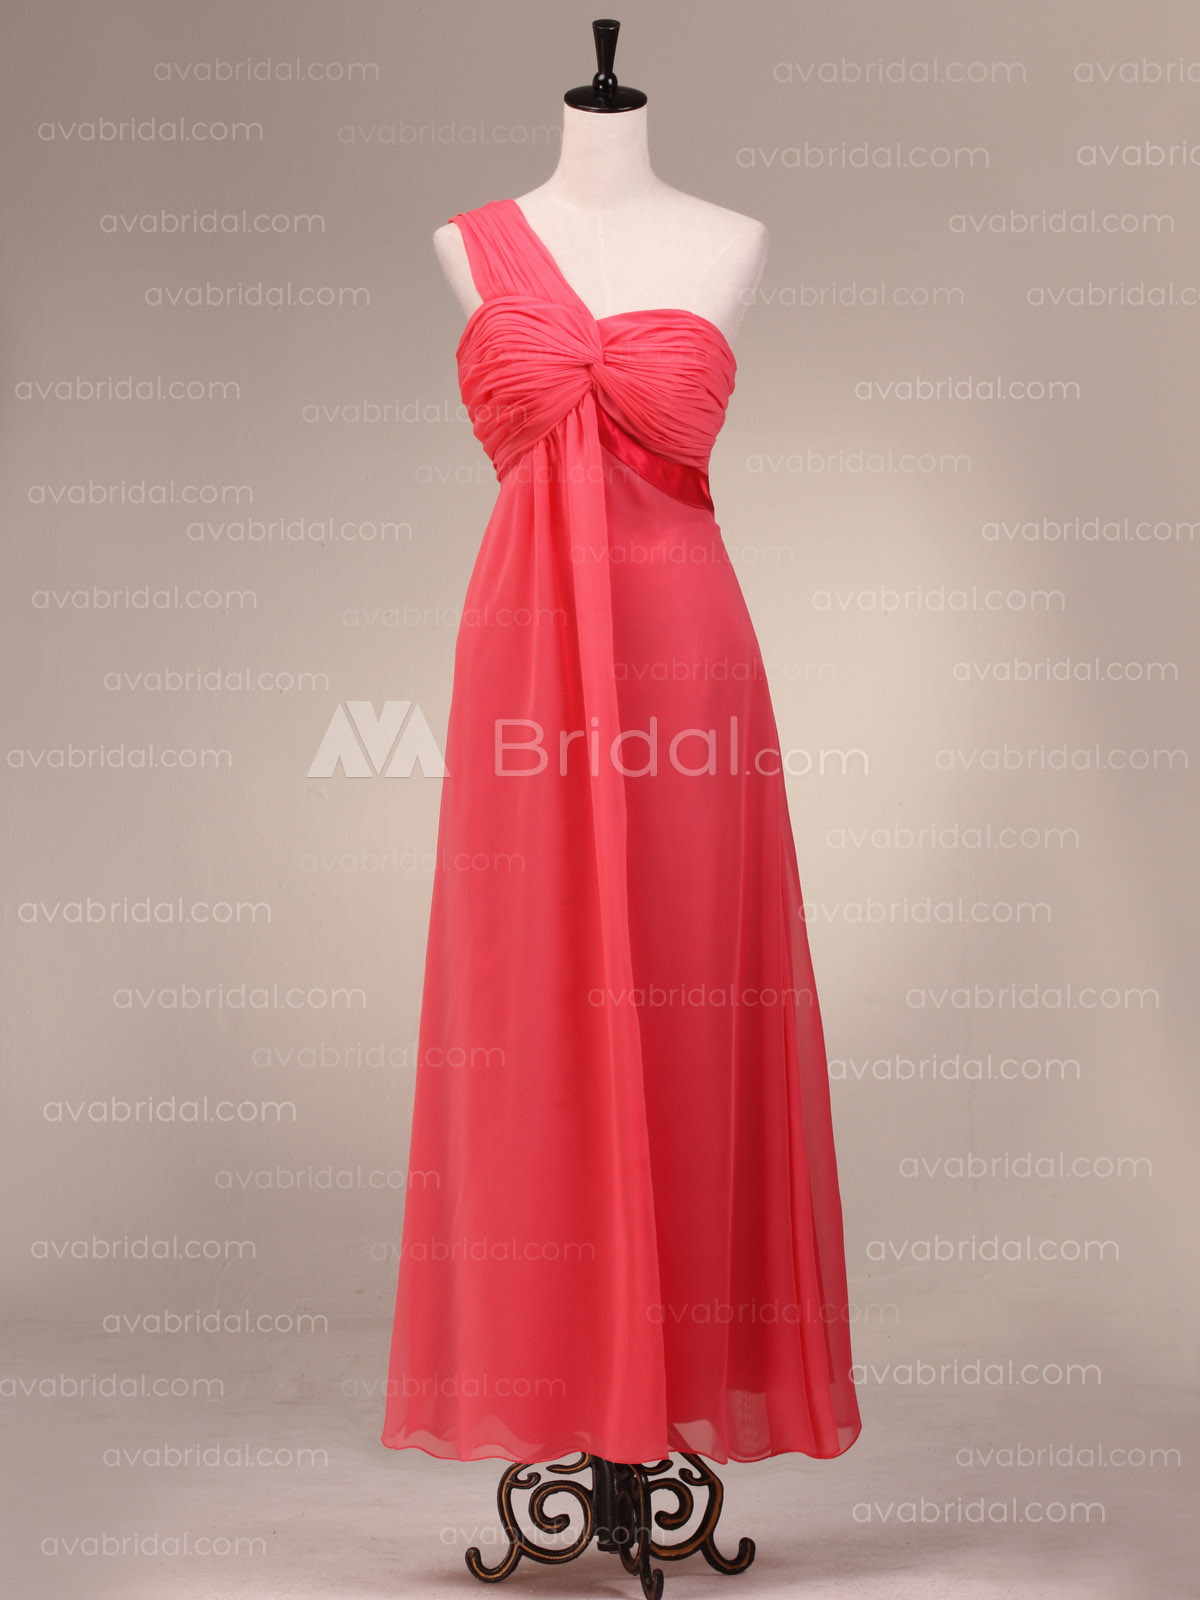 Grecian Goddess Chiffon Bridesmaid Dress B483-front